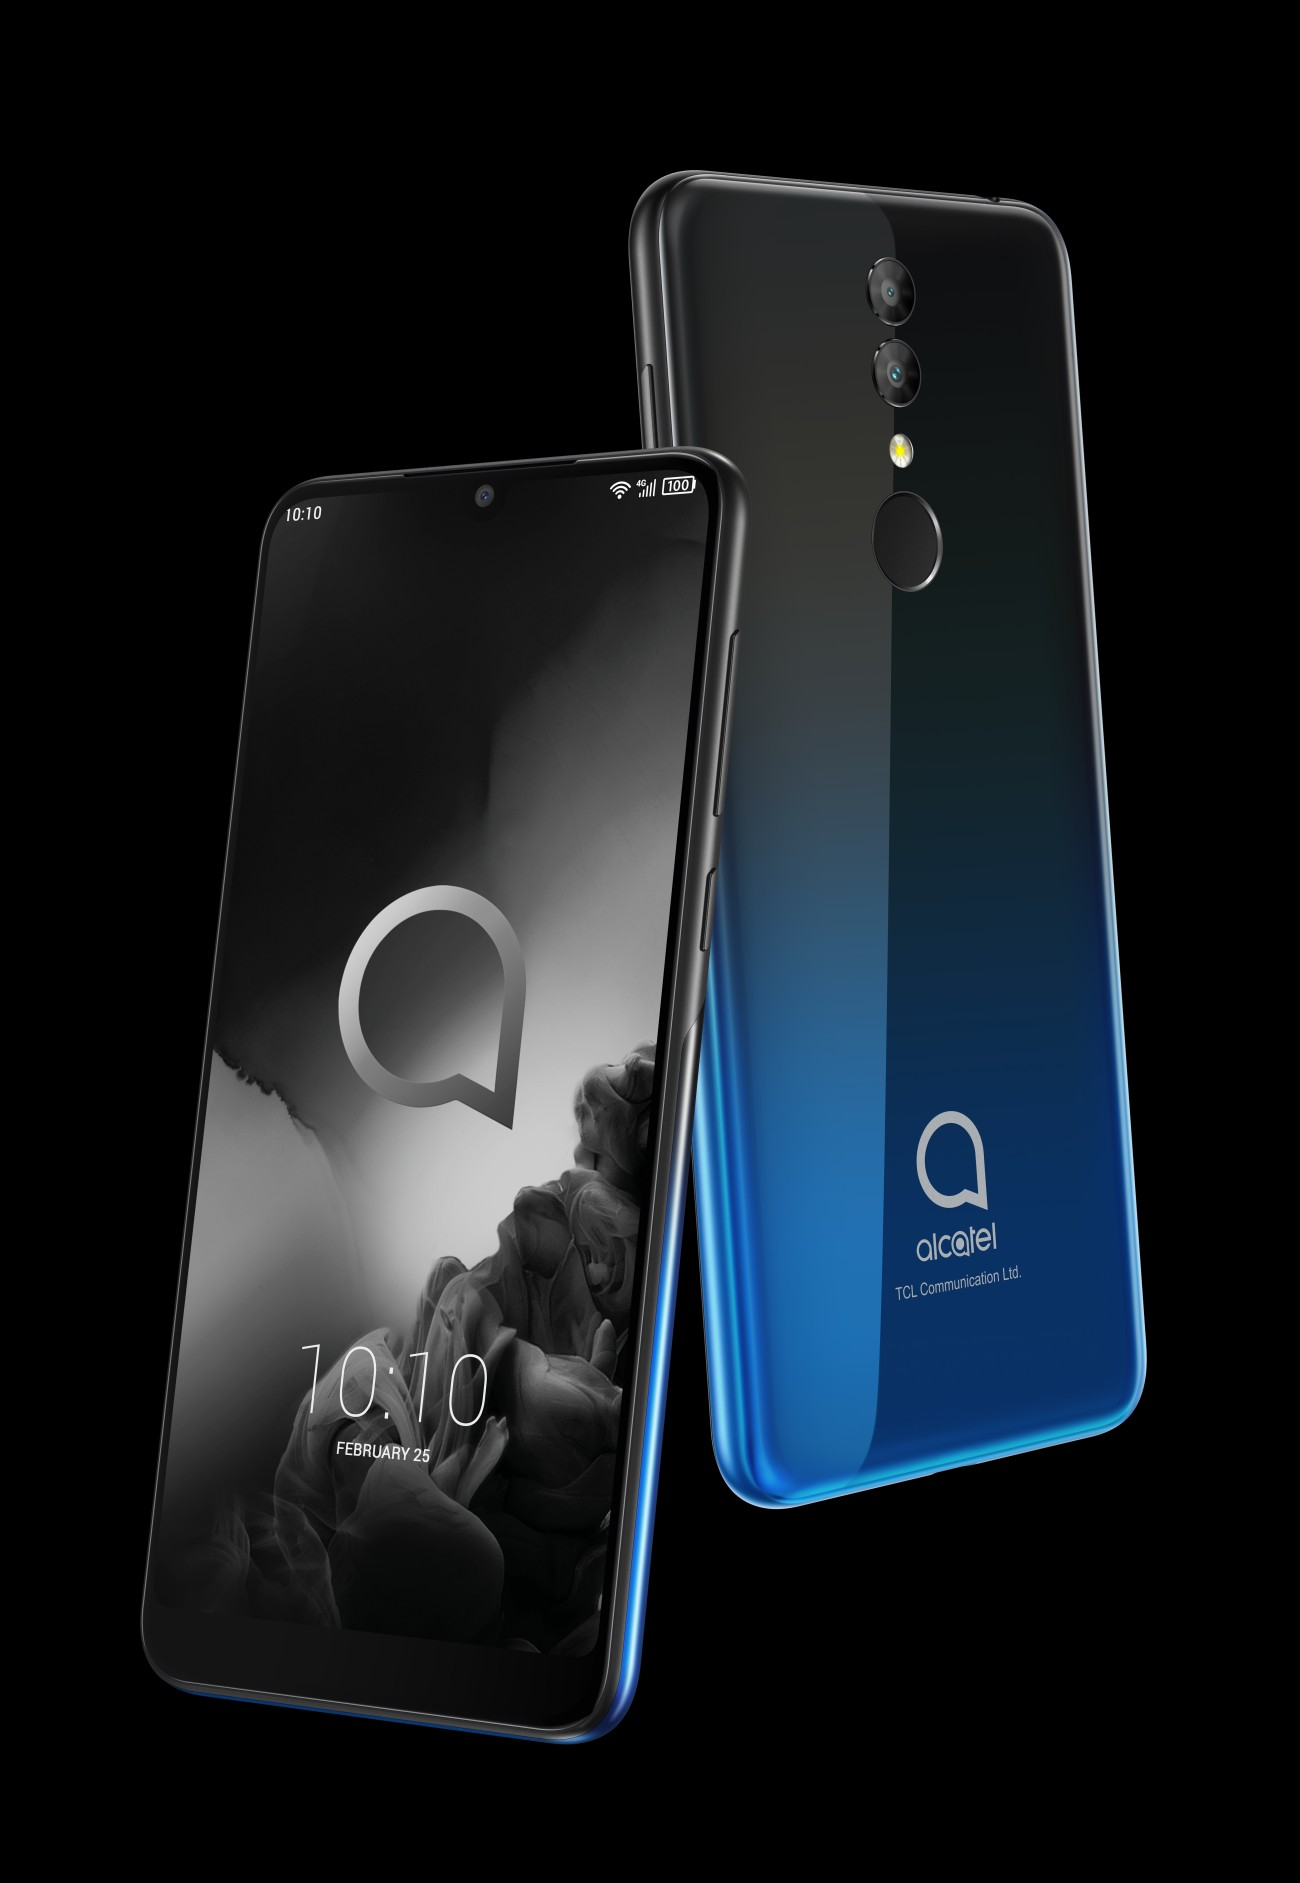 alcatel-3-2019-black-blue-gradient